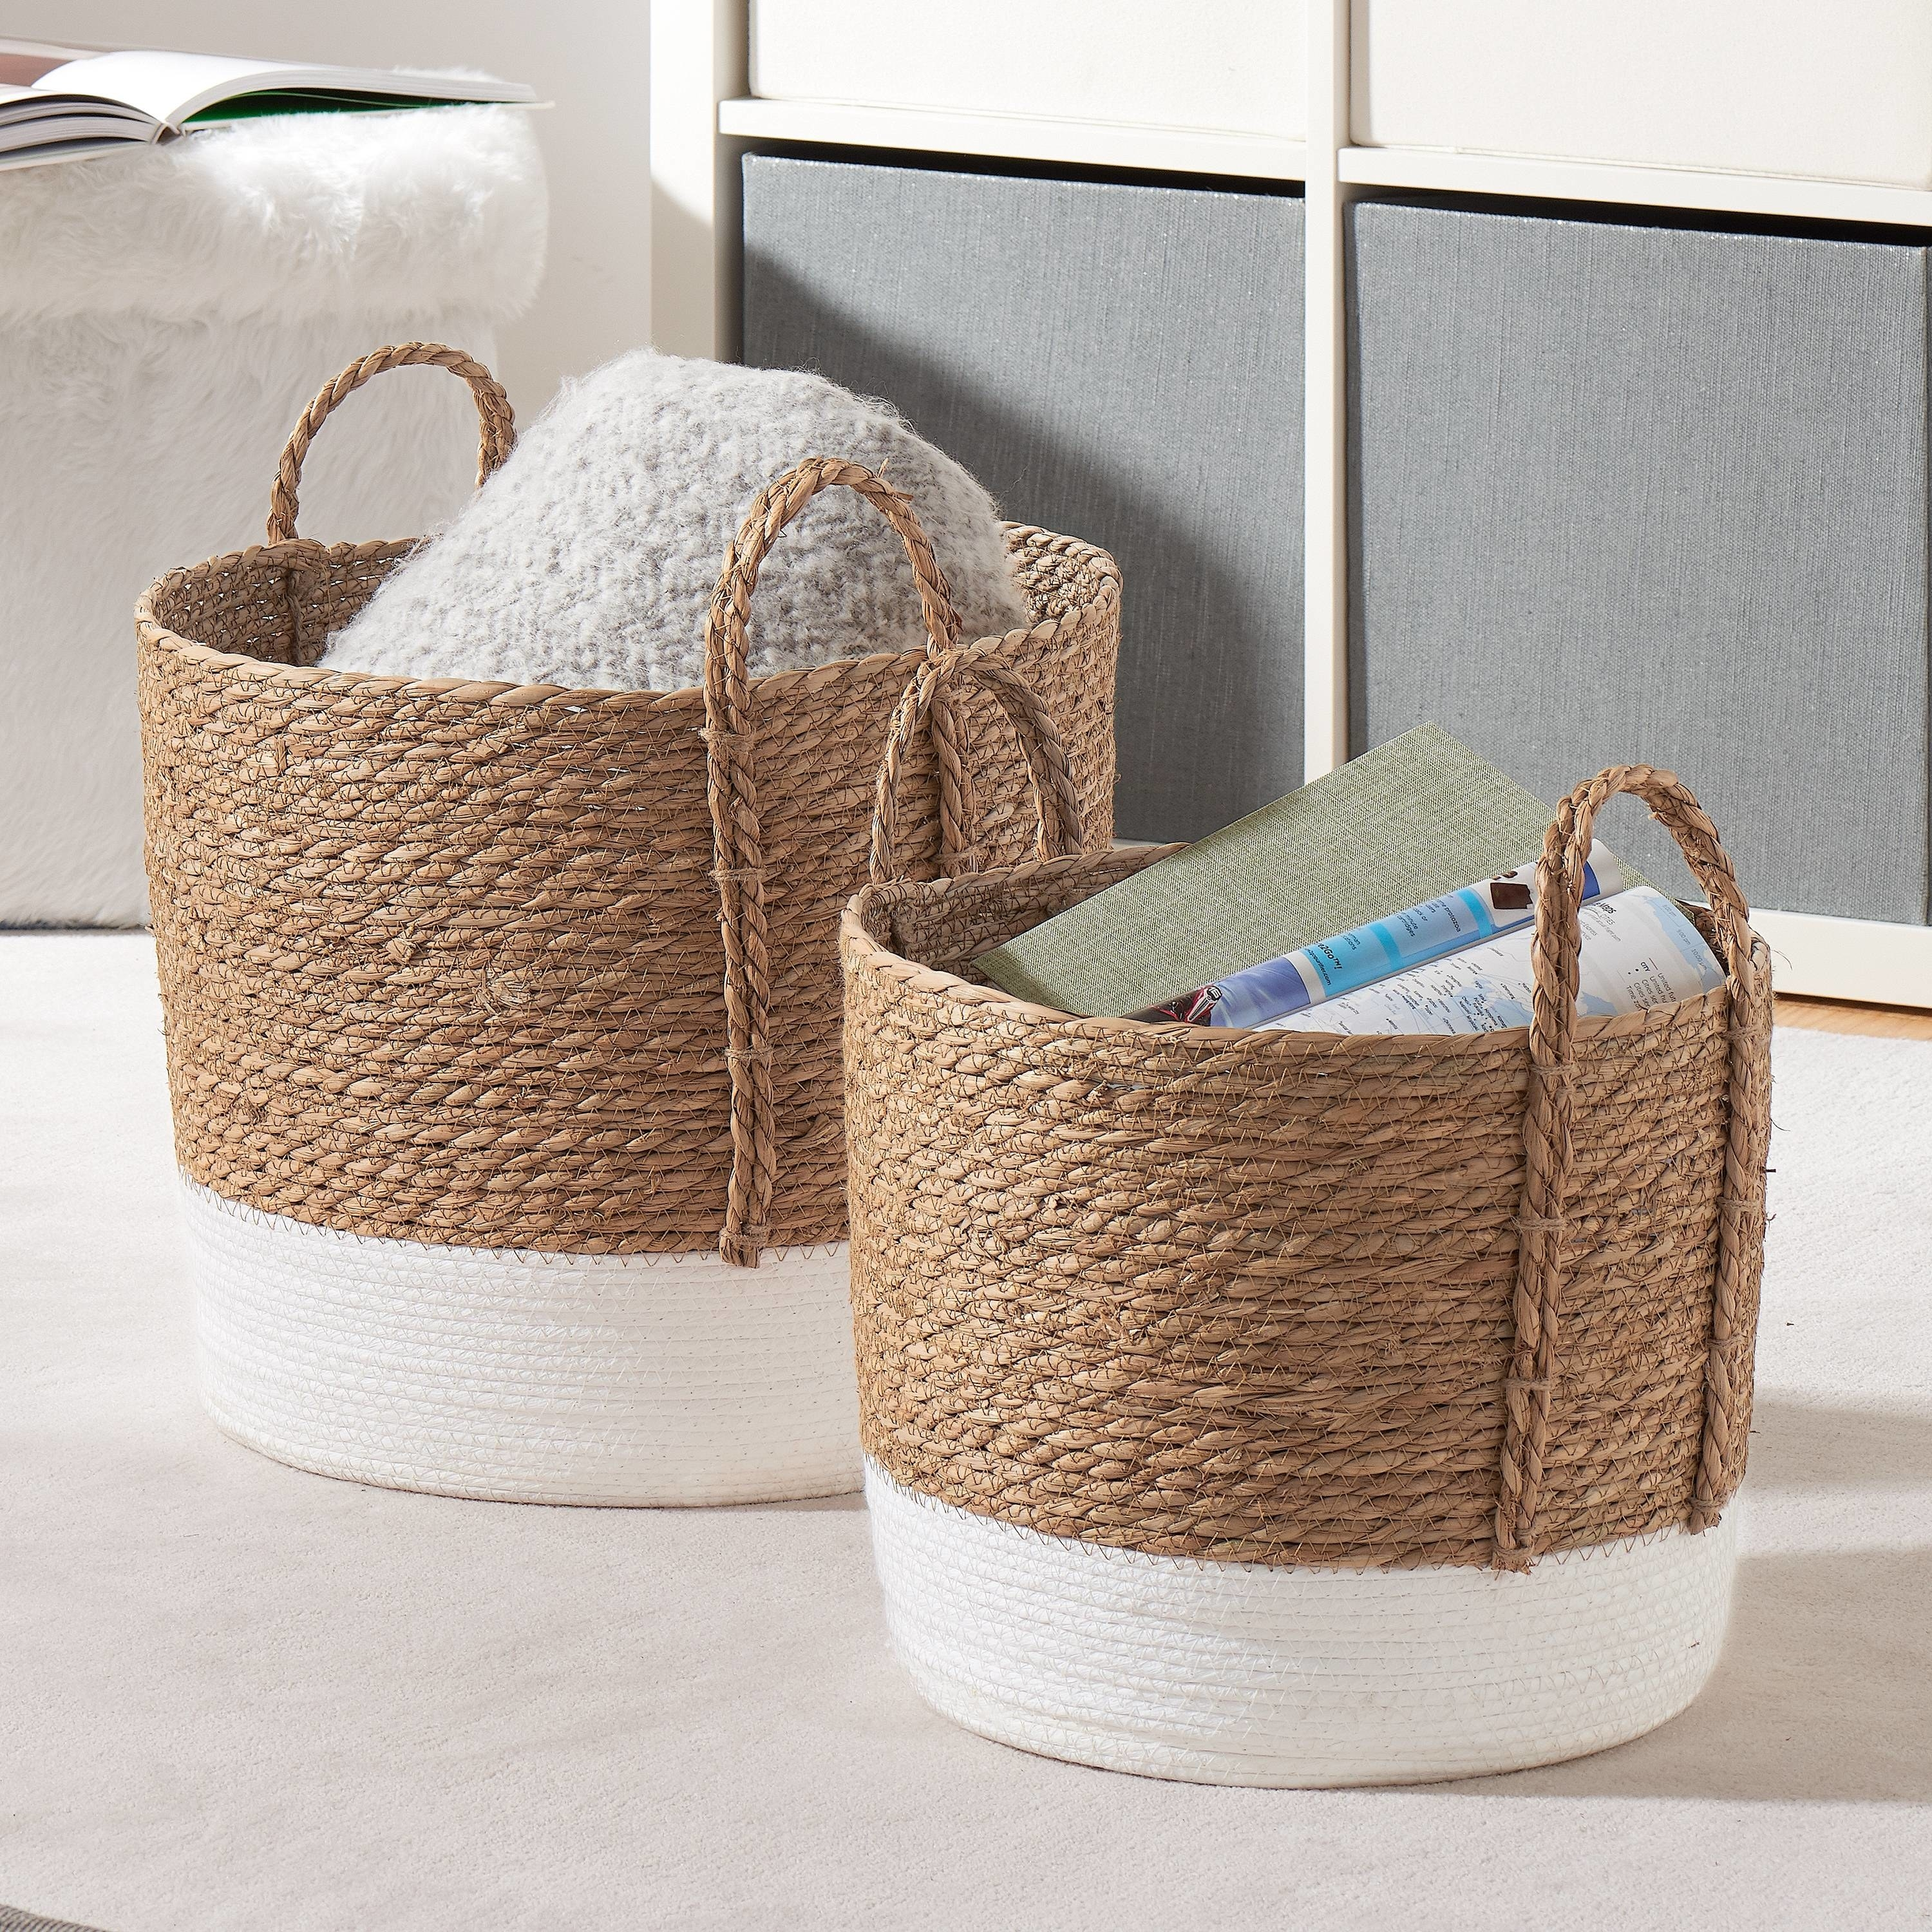 storage baskets with blankets and books